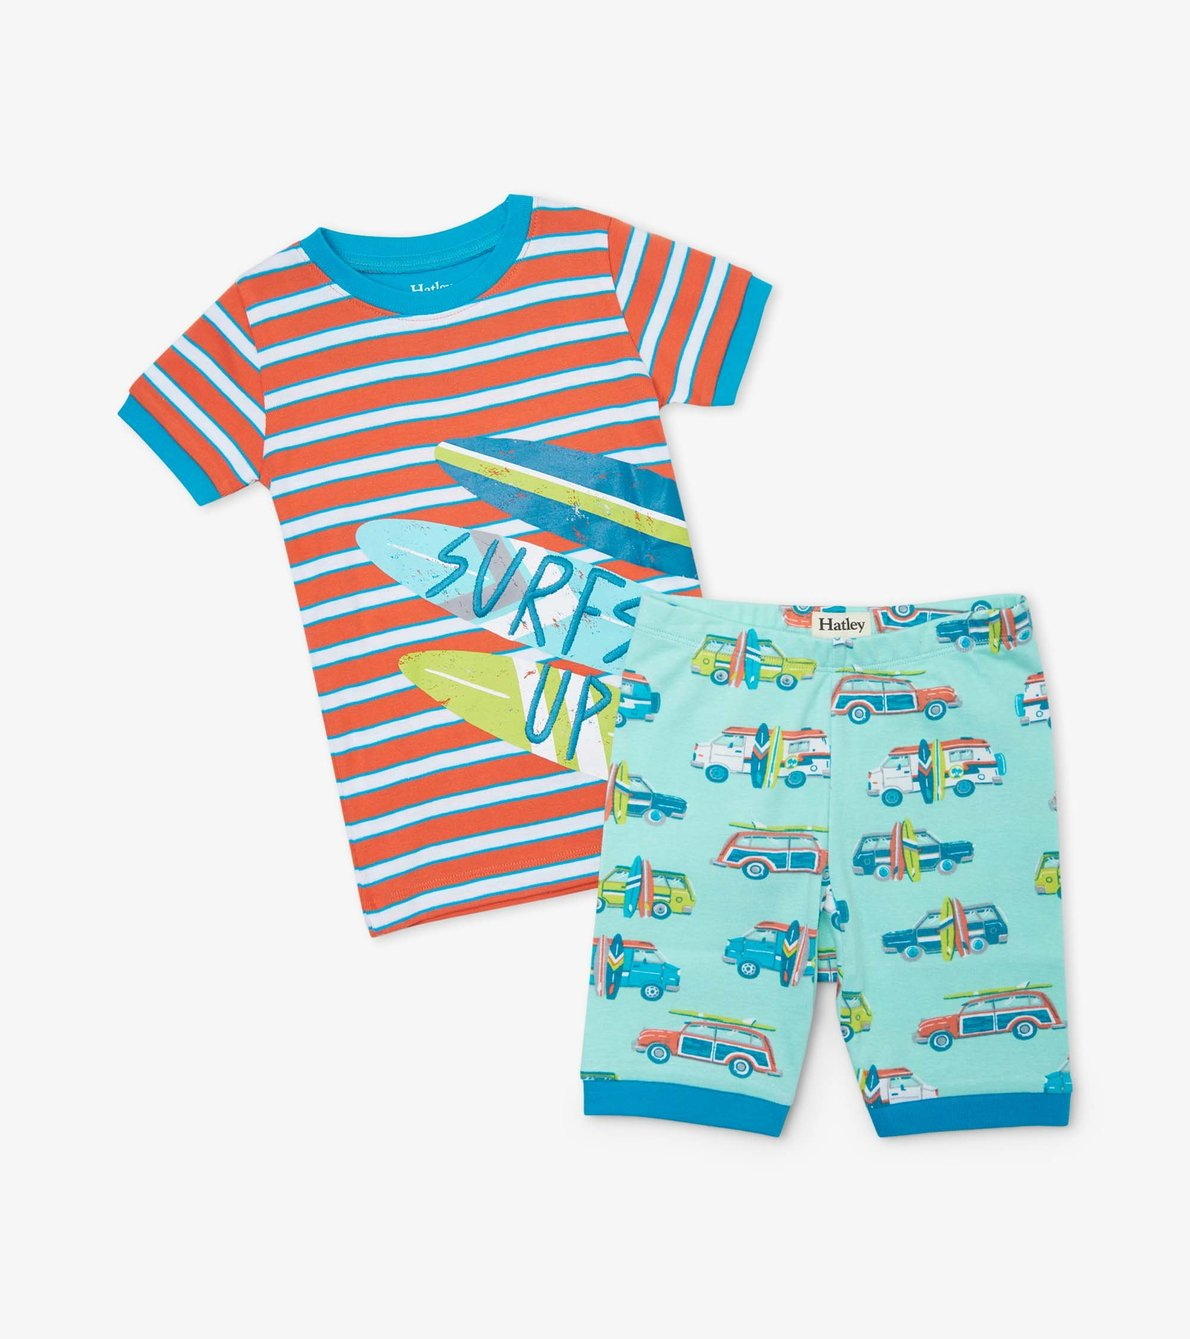 View larger image of Surfs Up Organic Cotton Short Pajama Set